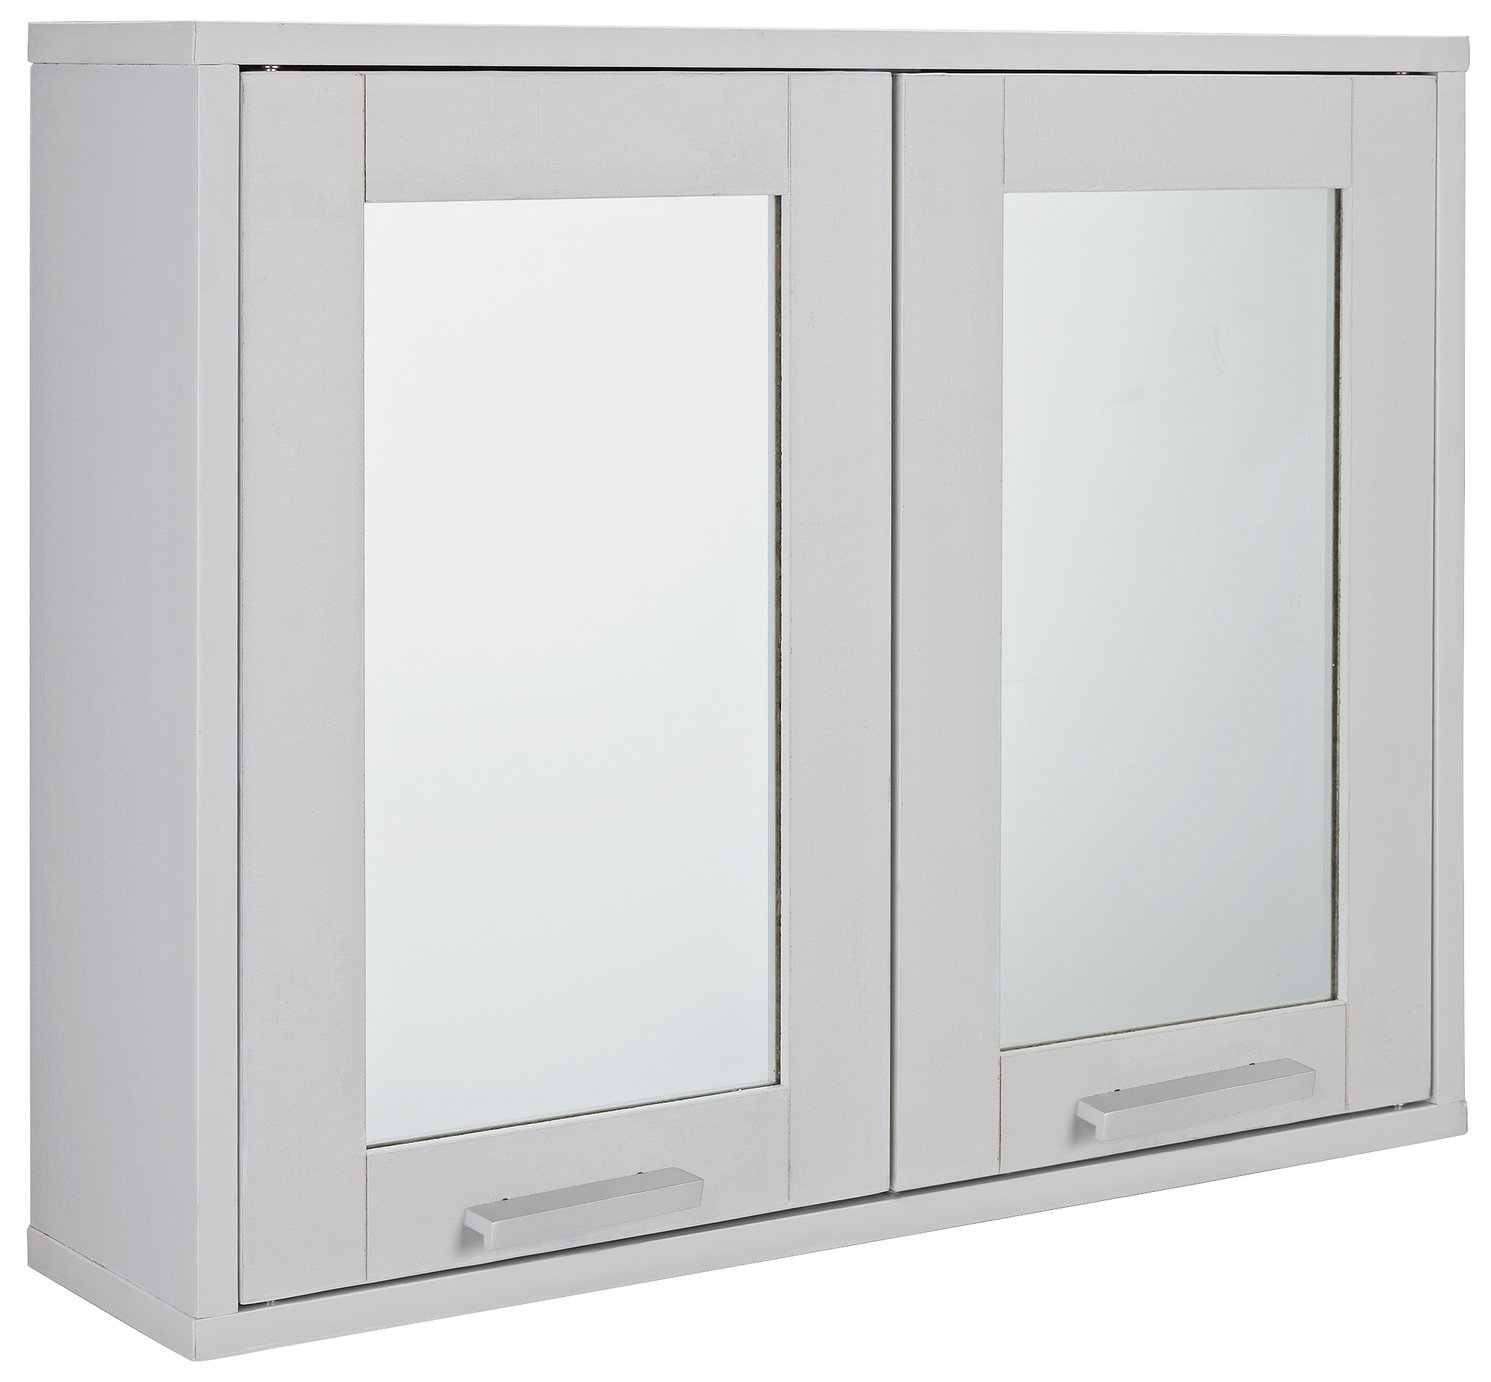 Argos Home Prime Double Mirrored Wall Cabinet